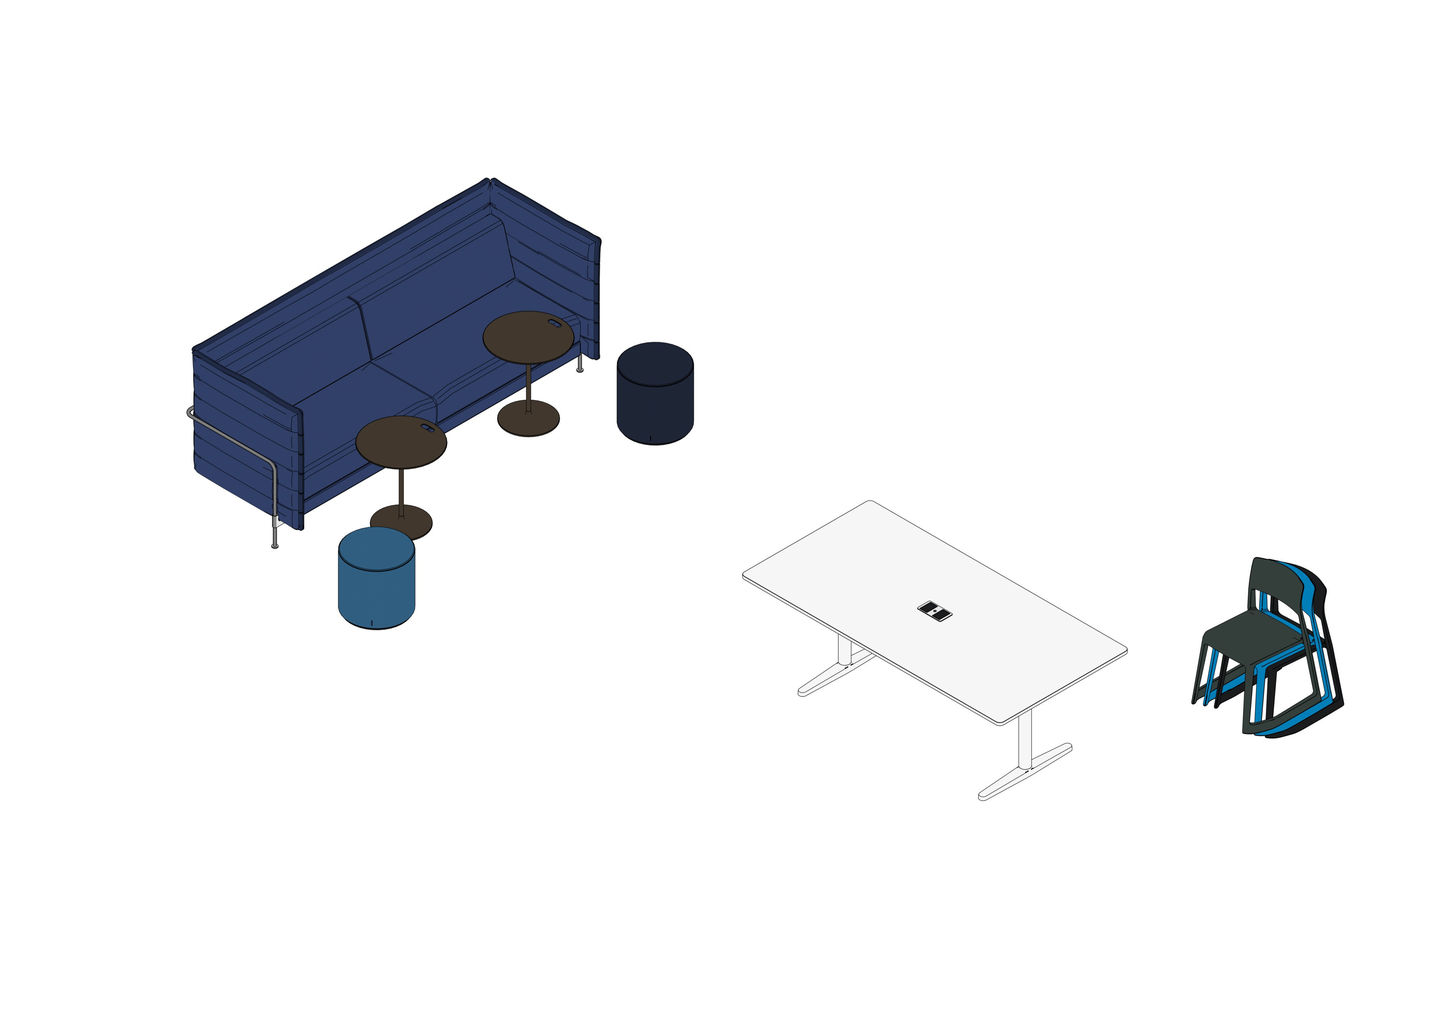 Tyde 2 Meeting 200 x 100, Tip Ton, Alcove Lowback Sofa 3 Seater, Occasional Low Table, Visiona Stool